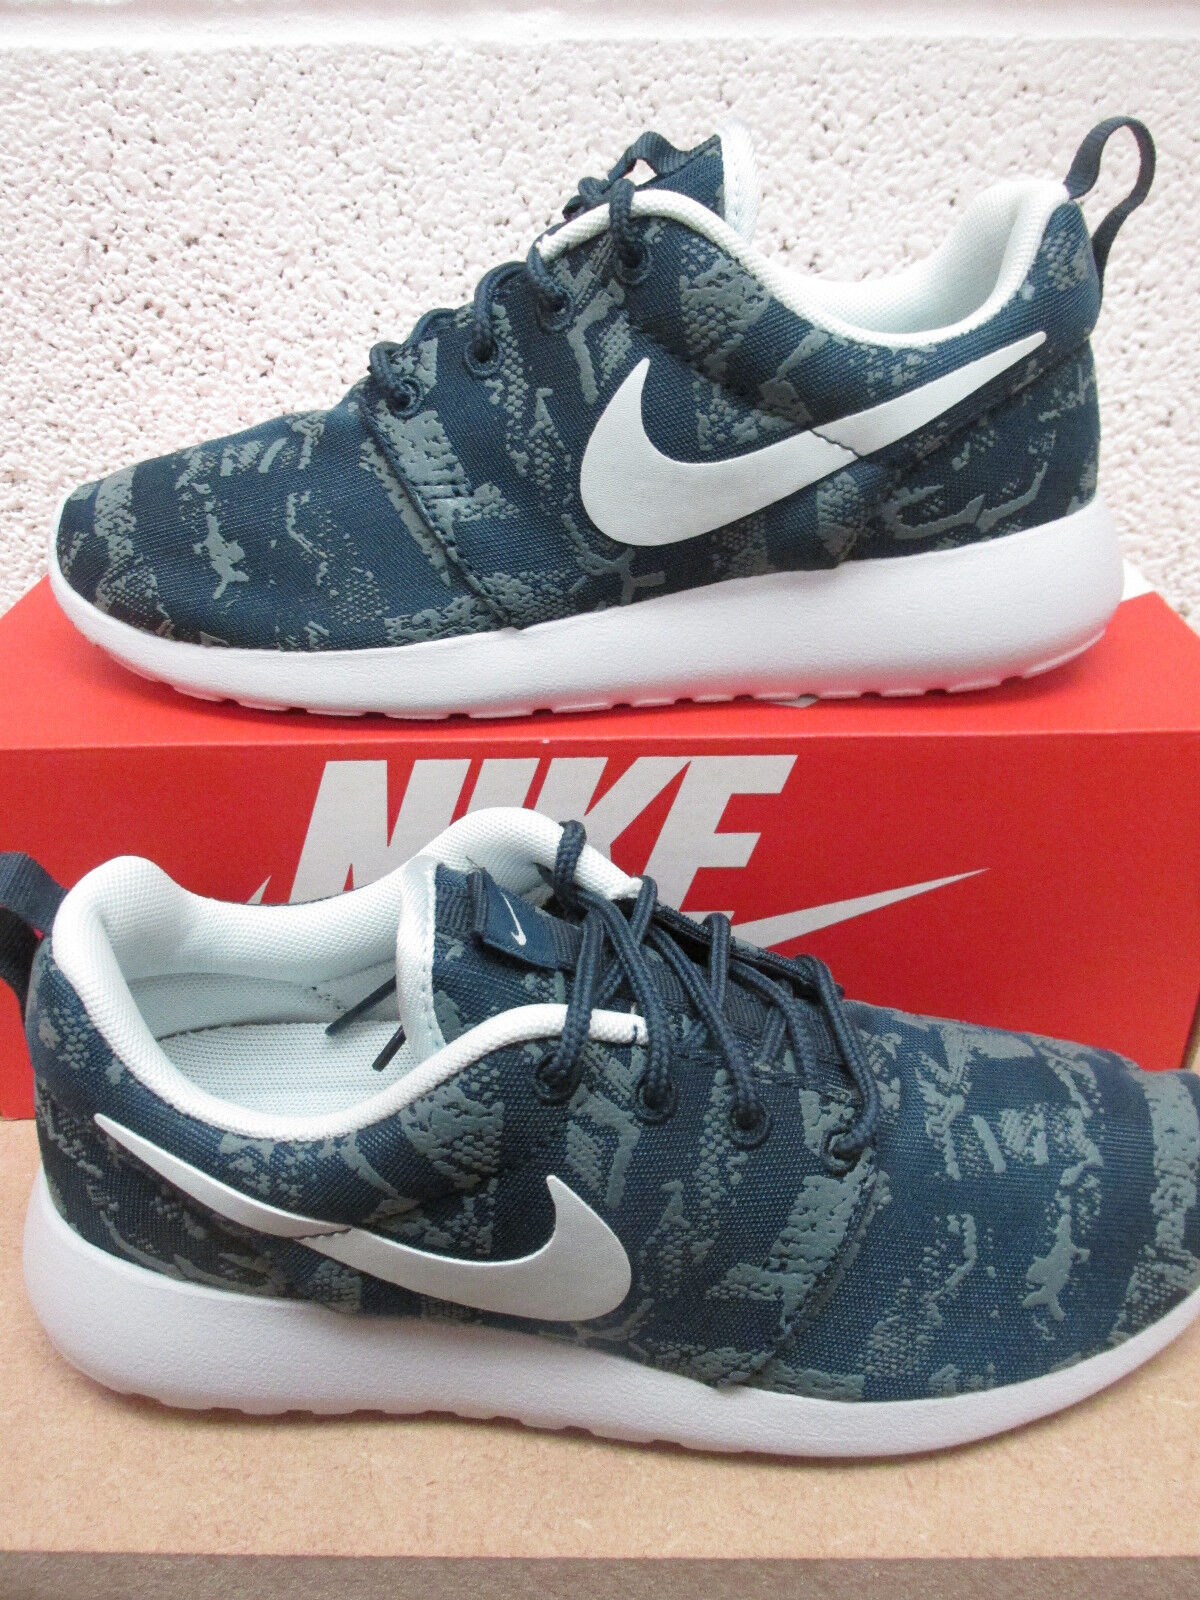 Nike womens roshe one print running trainers 599432 430 sneakers shoes